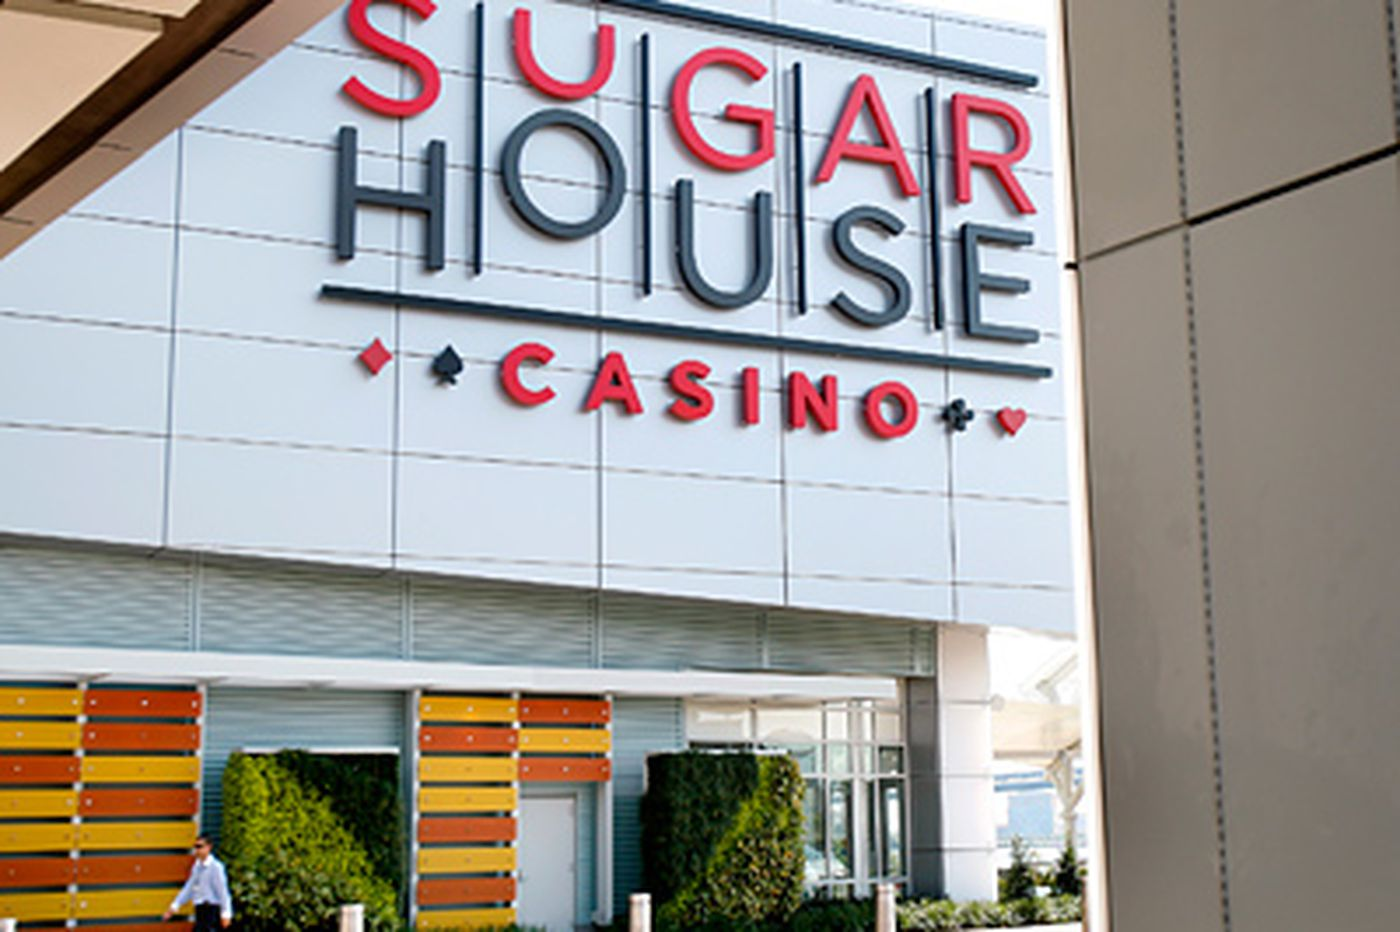 Architect for SugarHouse outlines a planned expansion to city planning board